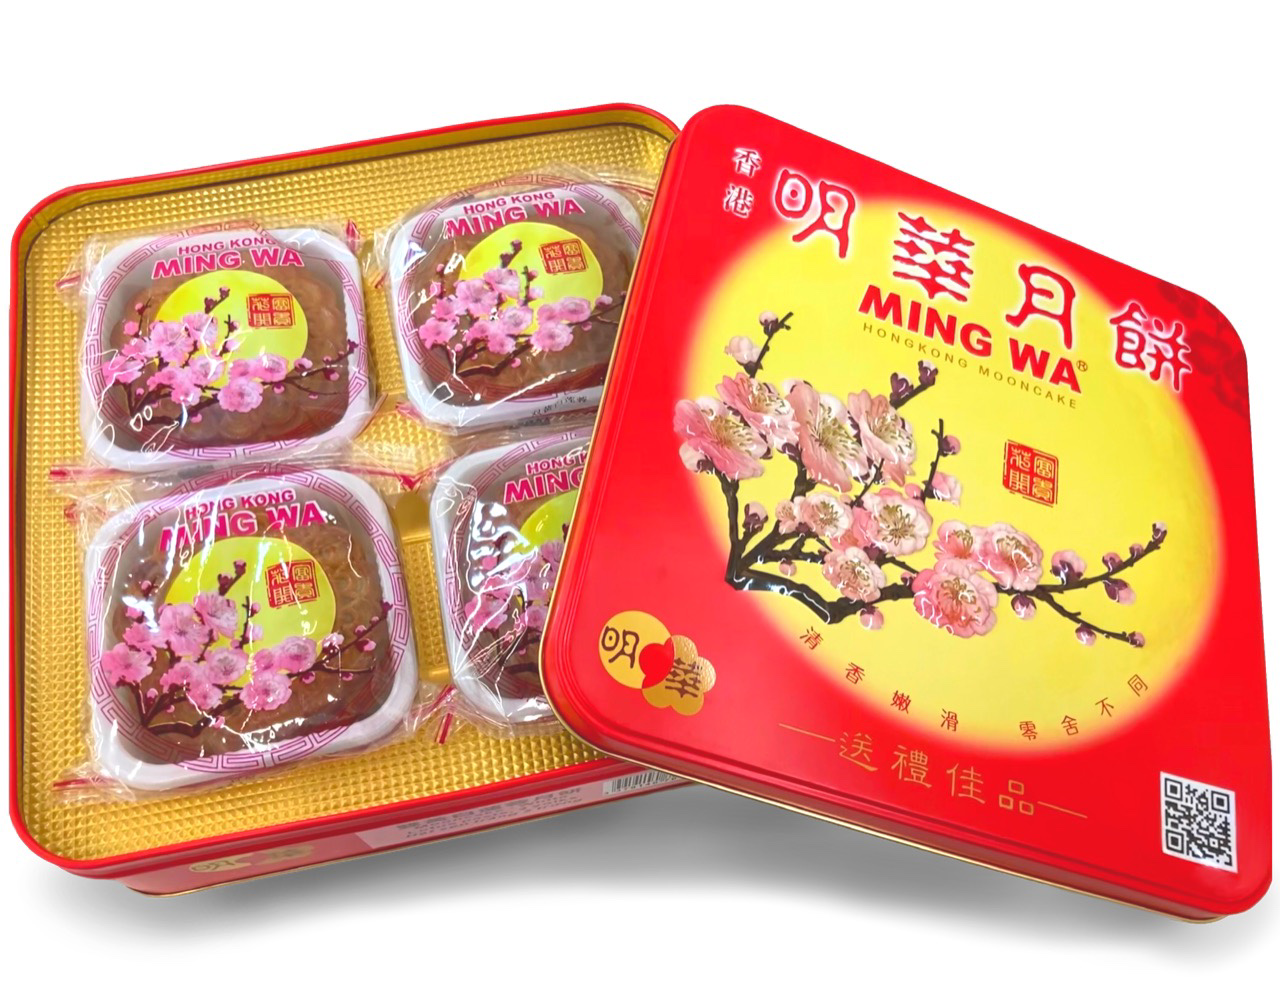 Mooncake With 2 Yolks and White Lotus Paste by Ming Wa